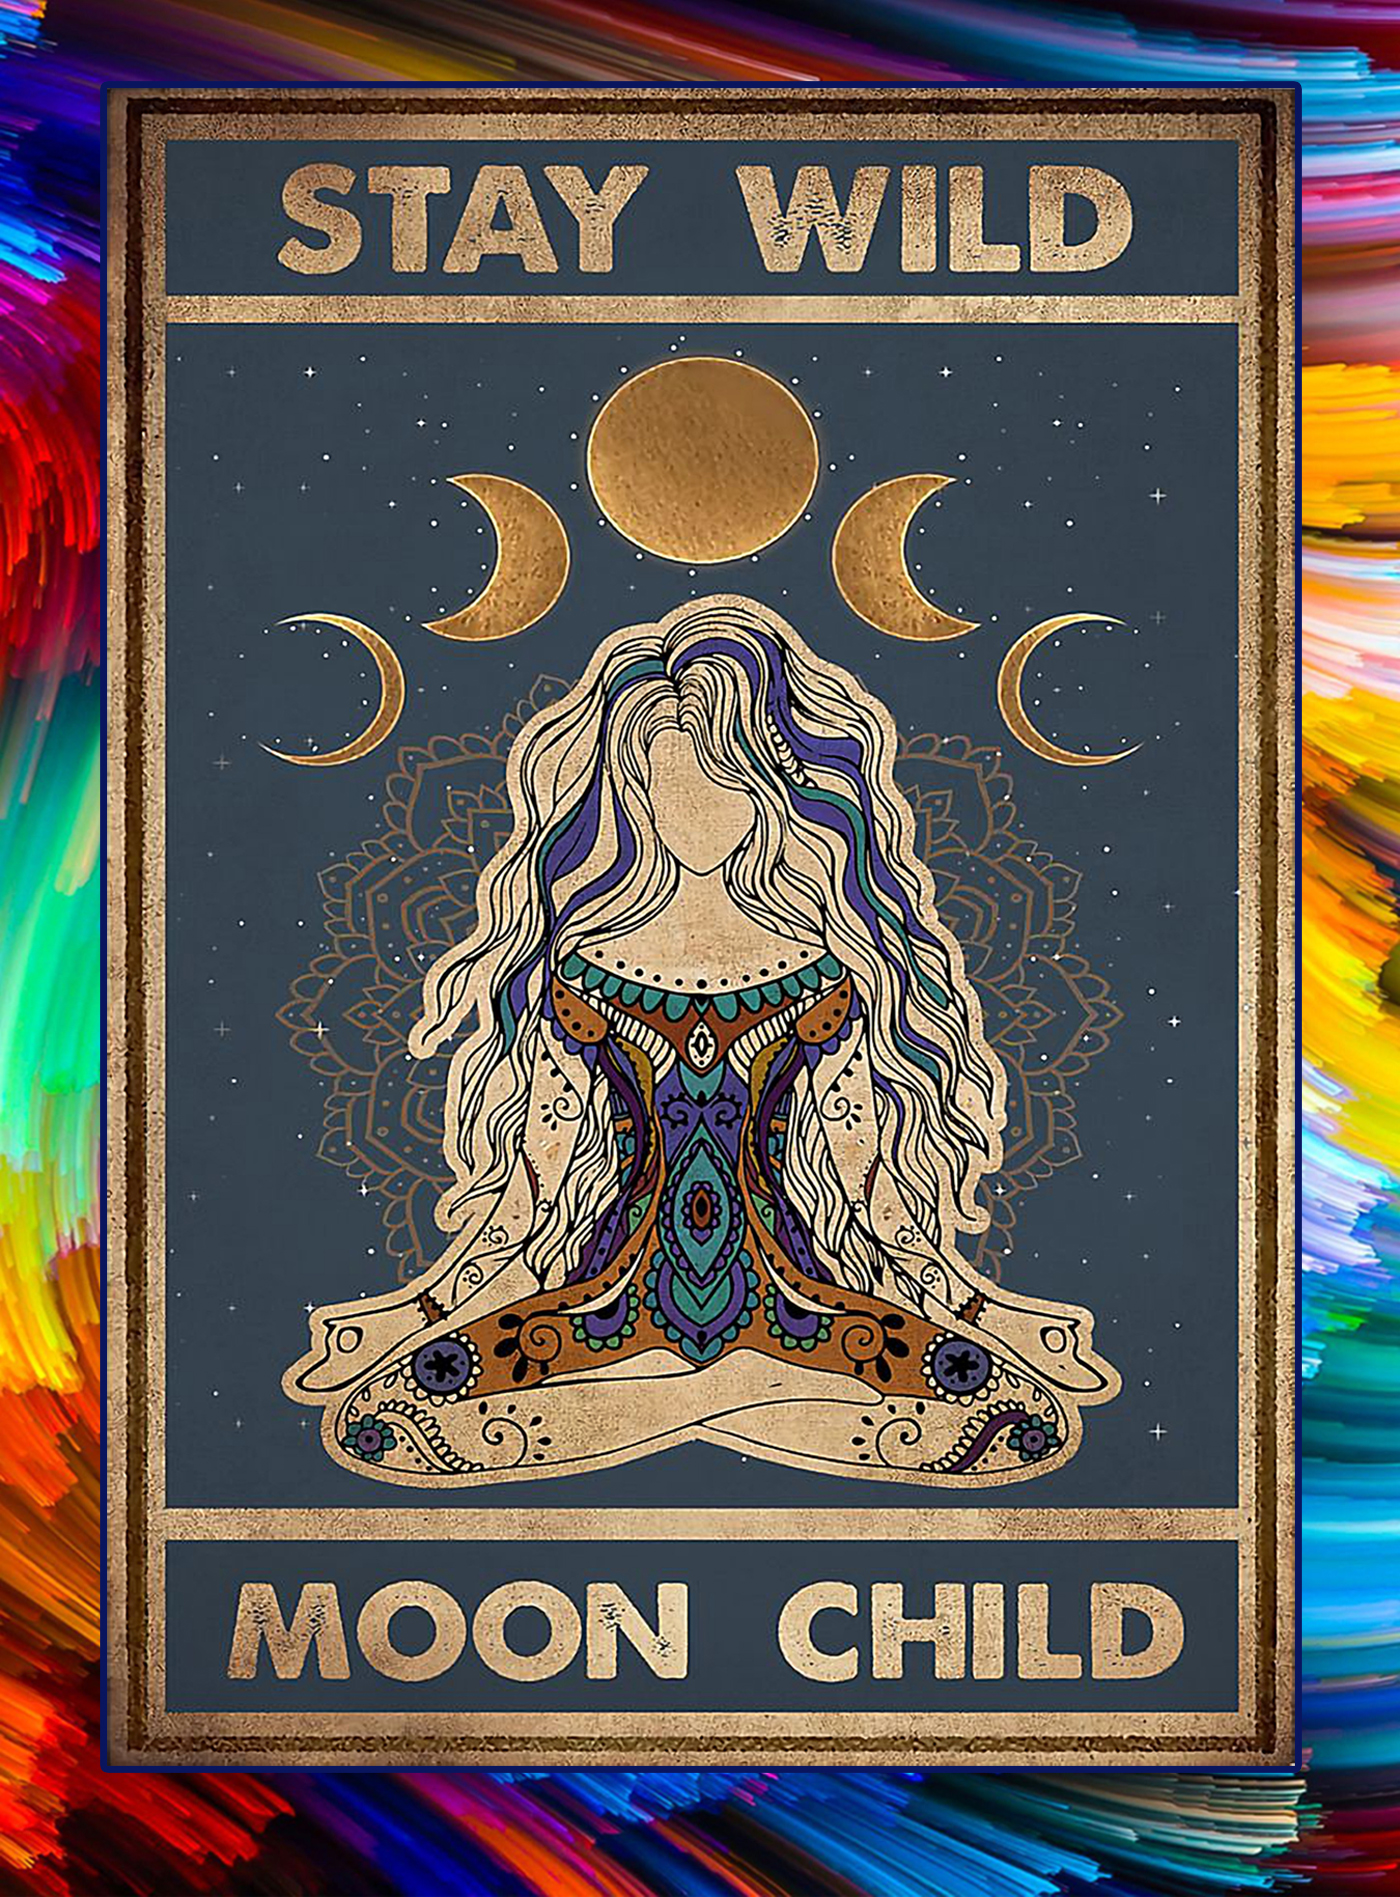 Stay wild moon child poster - A1